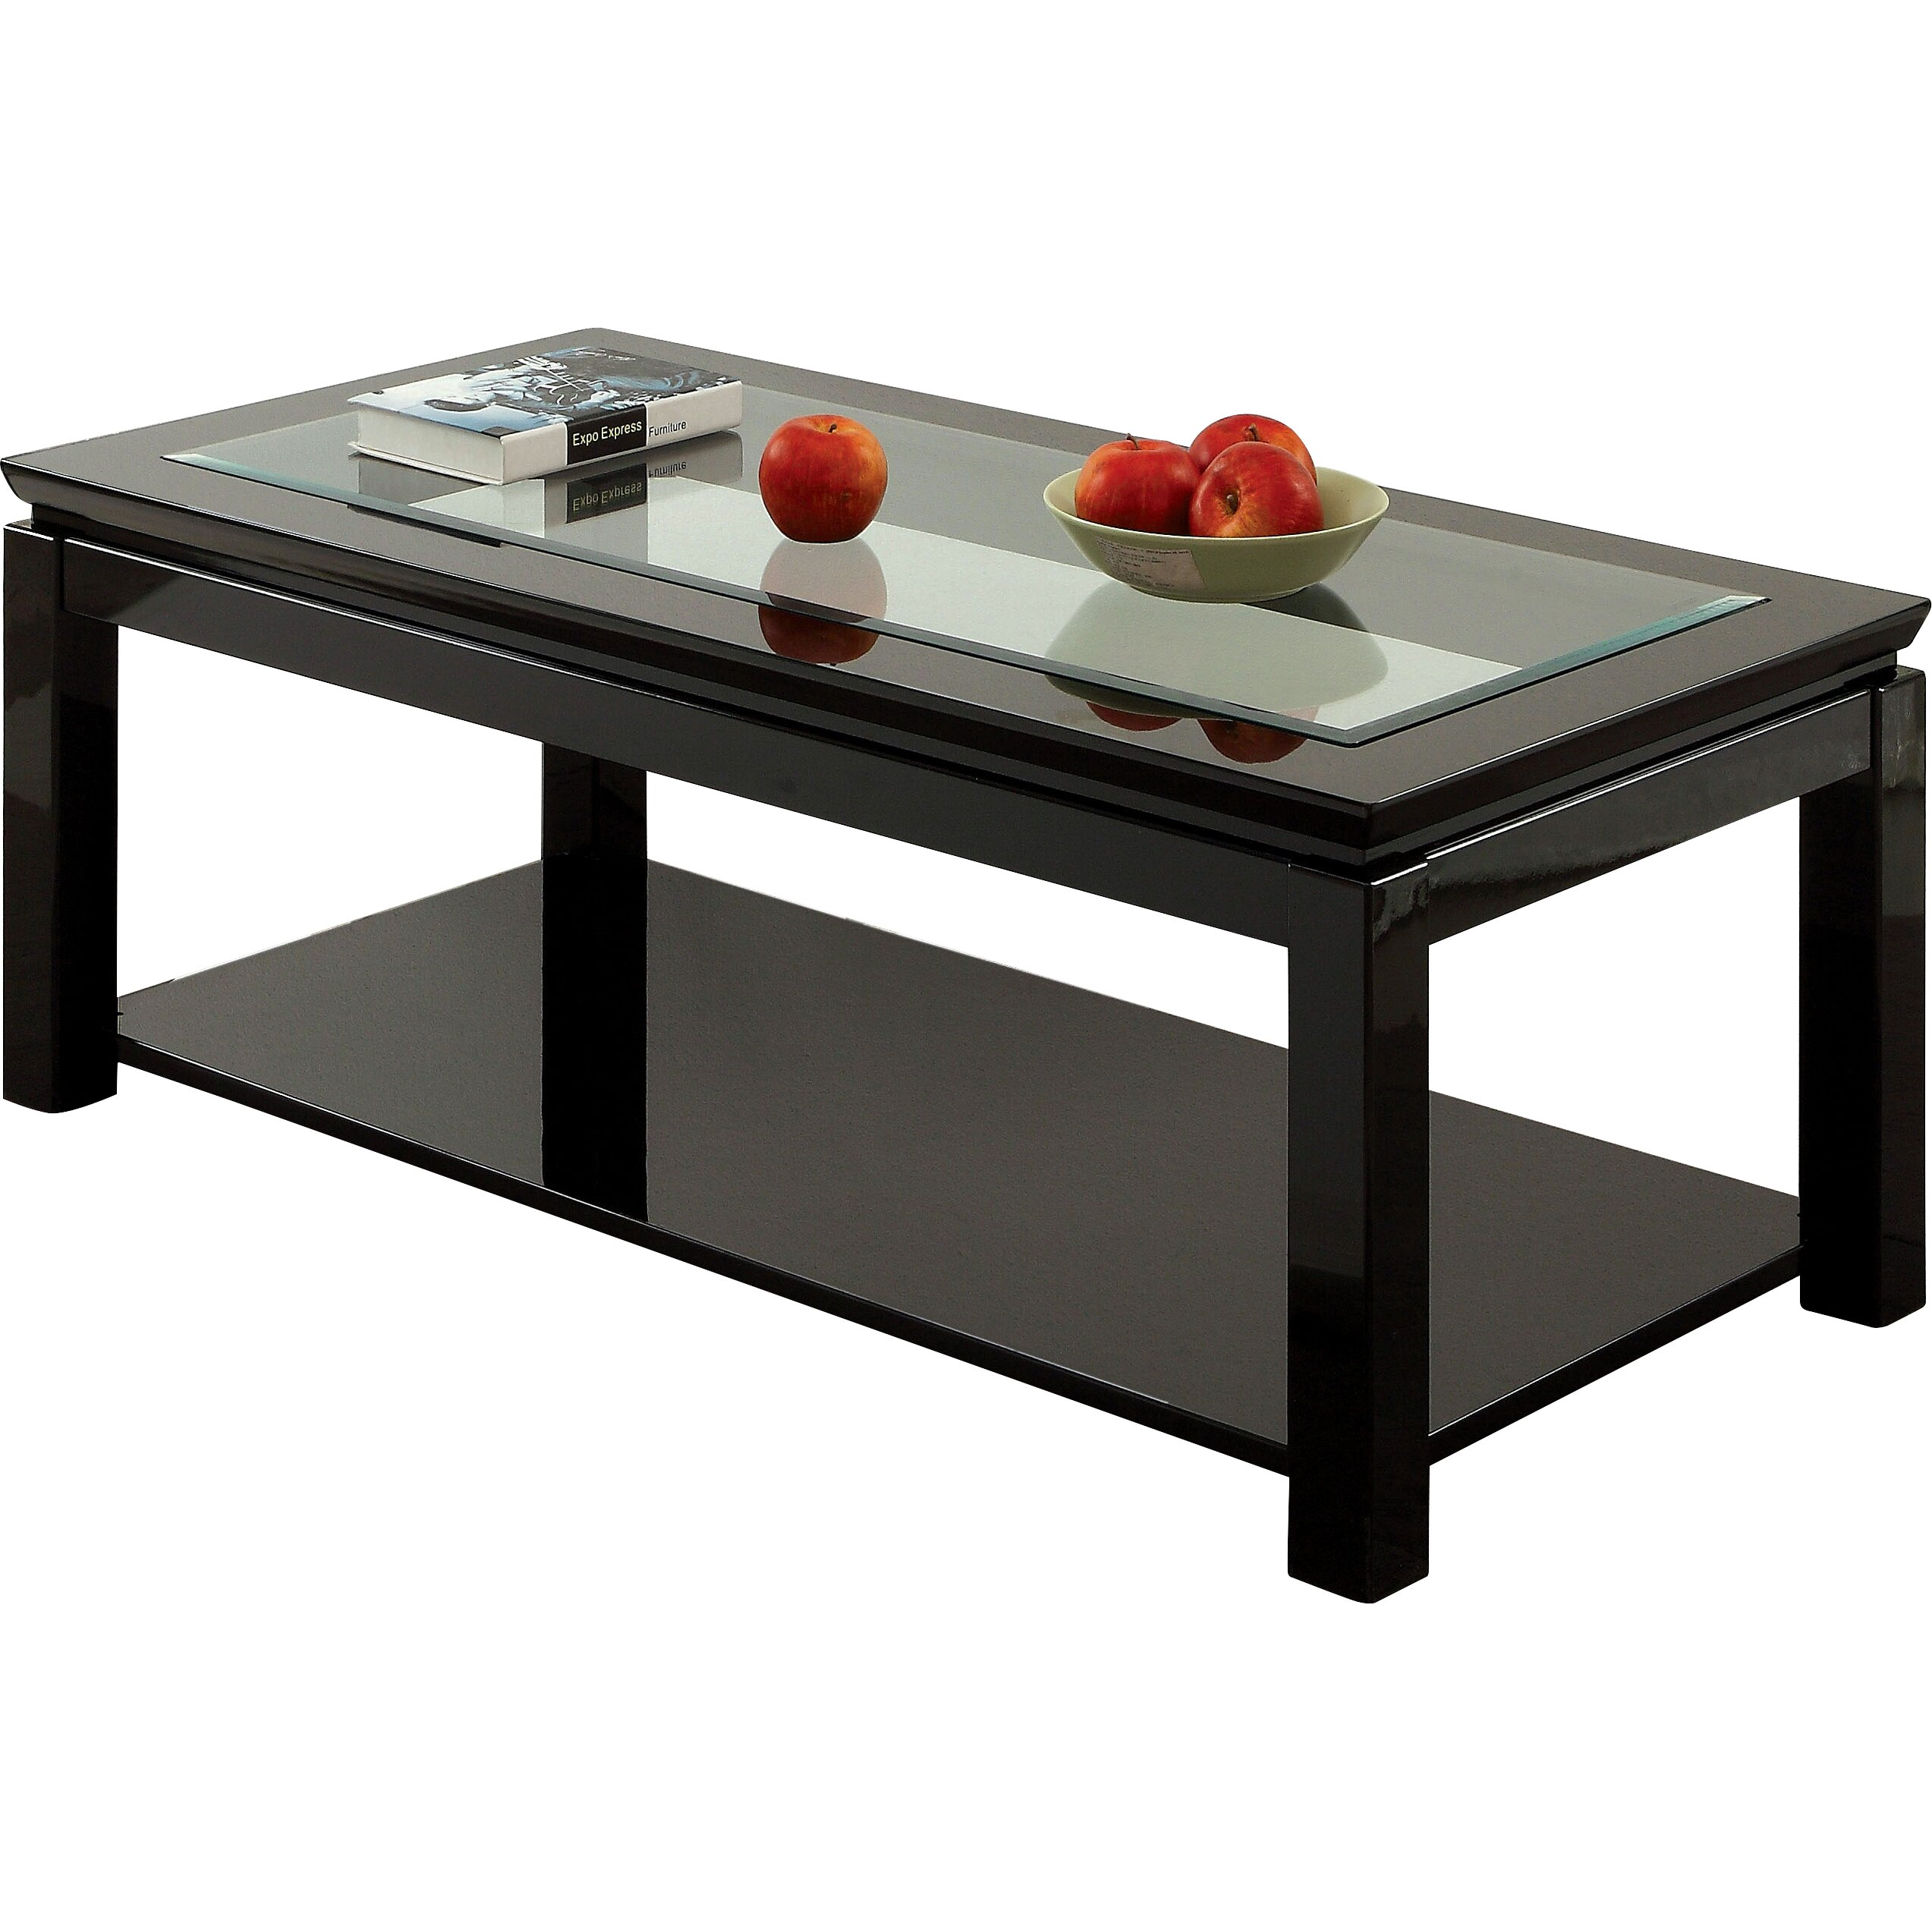 hokku designs senna coffee table reviews wayfair. Black Bedroom Furniture Sets. Home Design Ideas